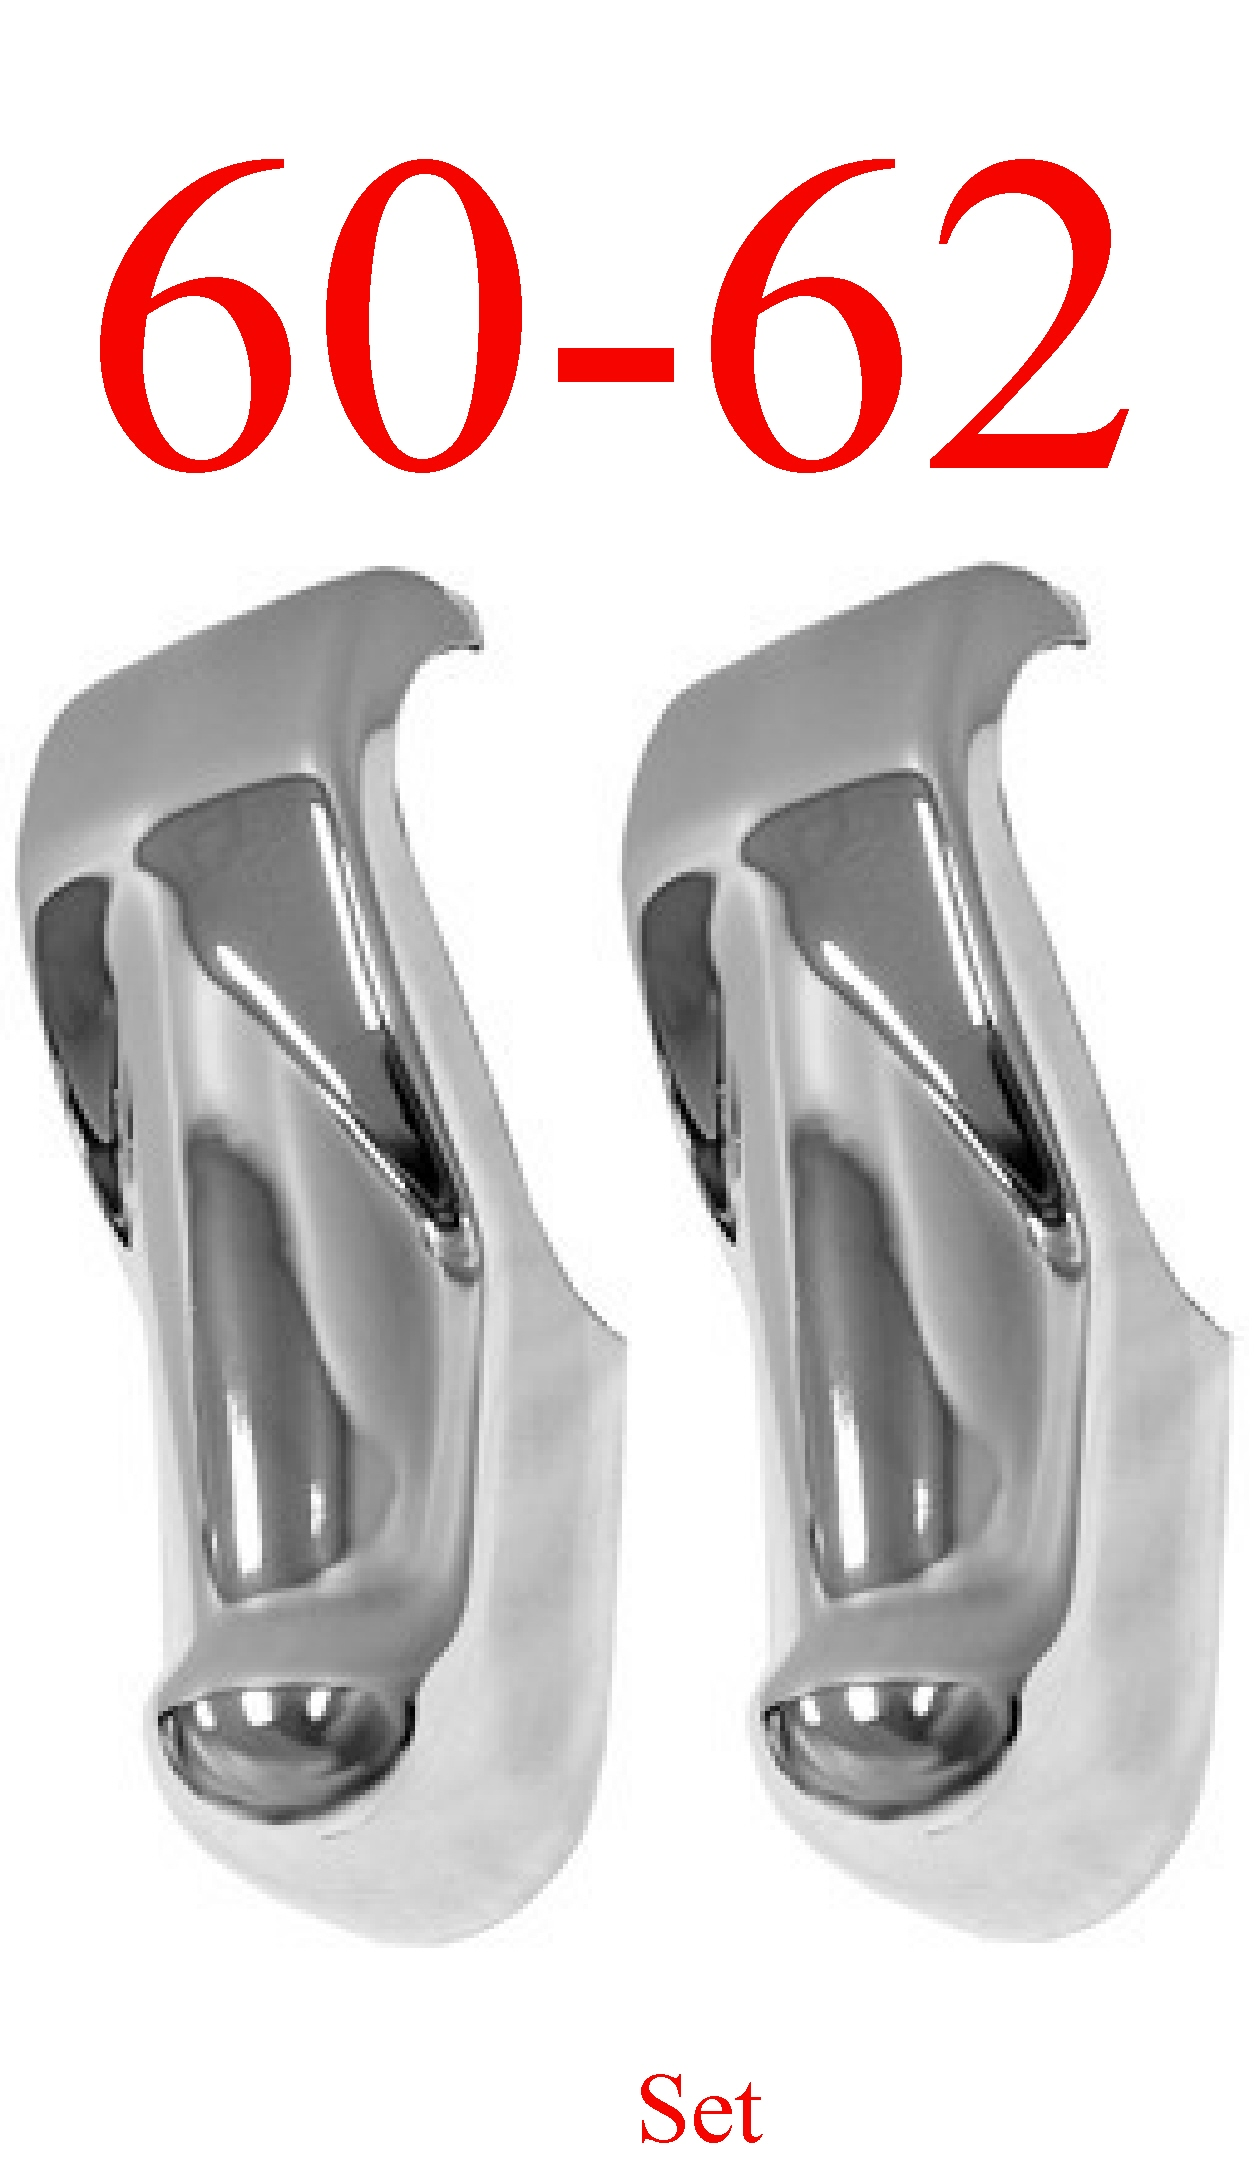 60-62 Chevy GMC Bumper Guard Pair, Chrome